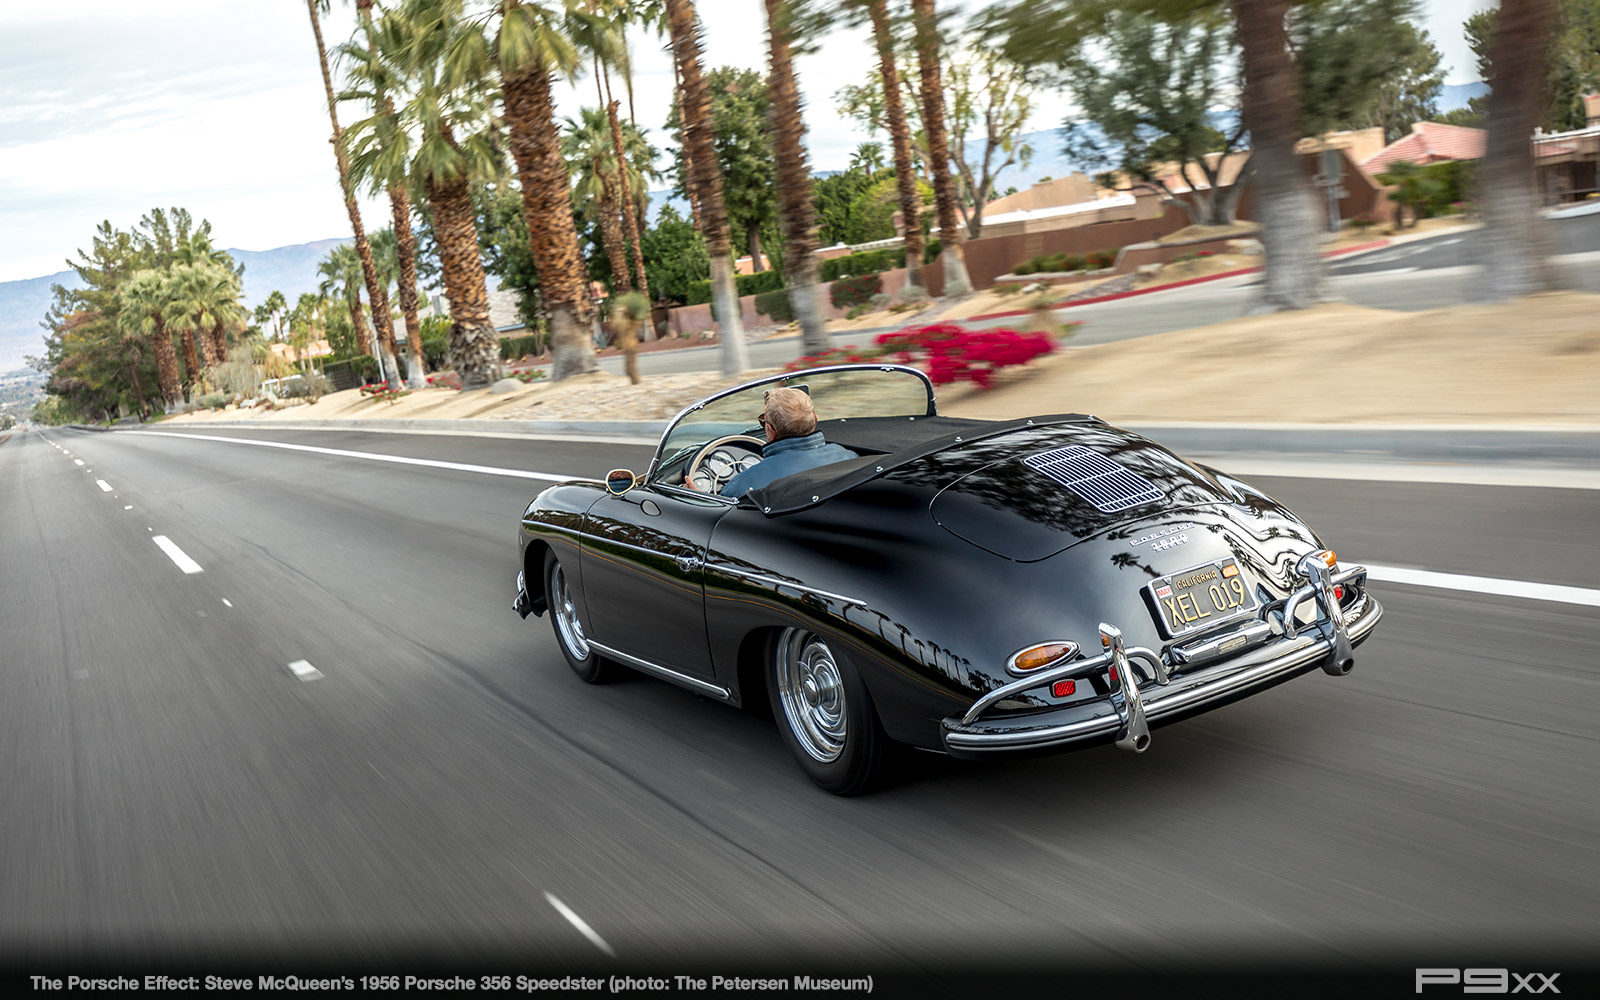 1956-Steve-McQueen-Chad-356-Speedster-Petersen-Automotive-Museum-The-Porsche-Effect-344